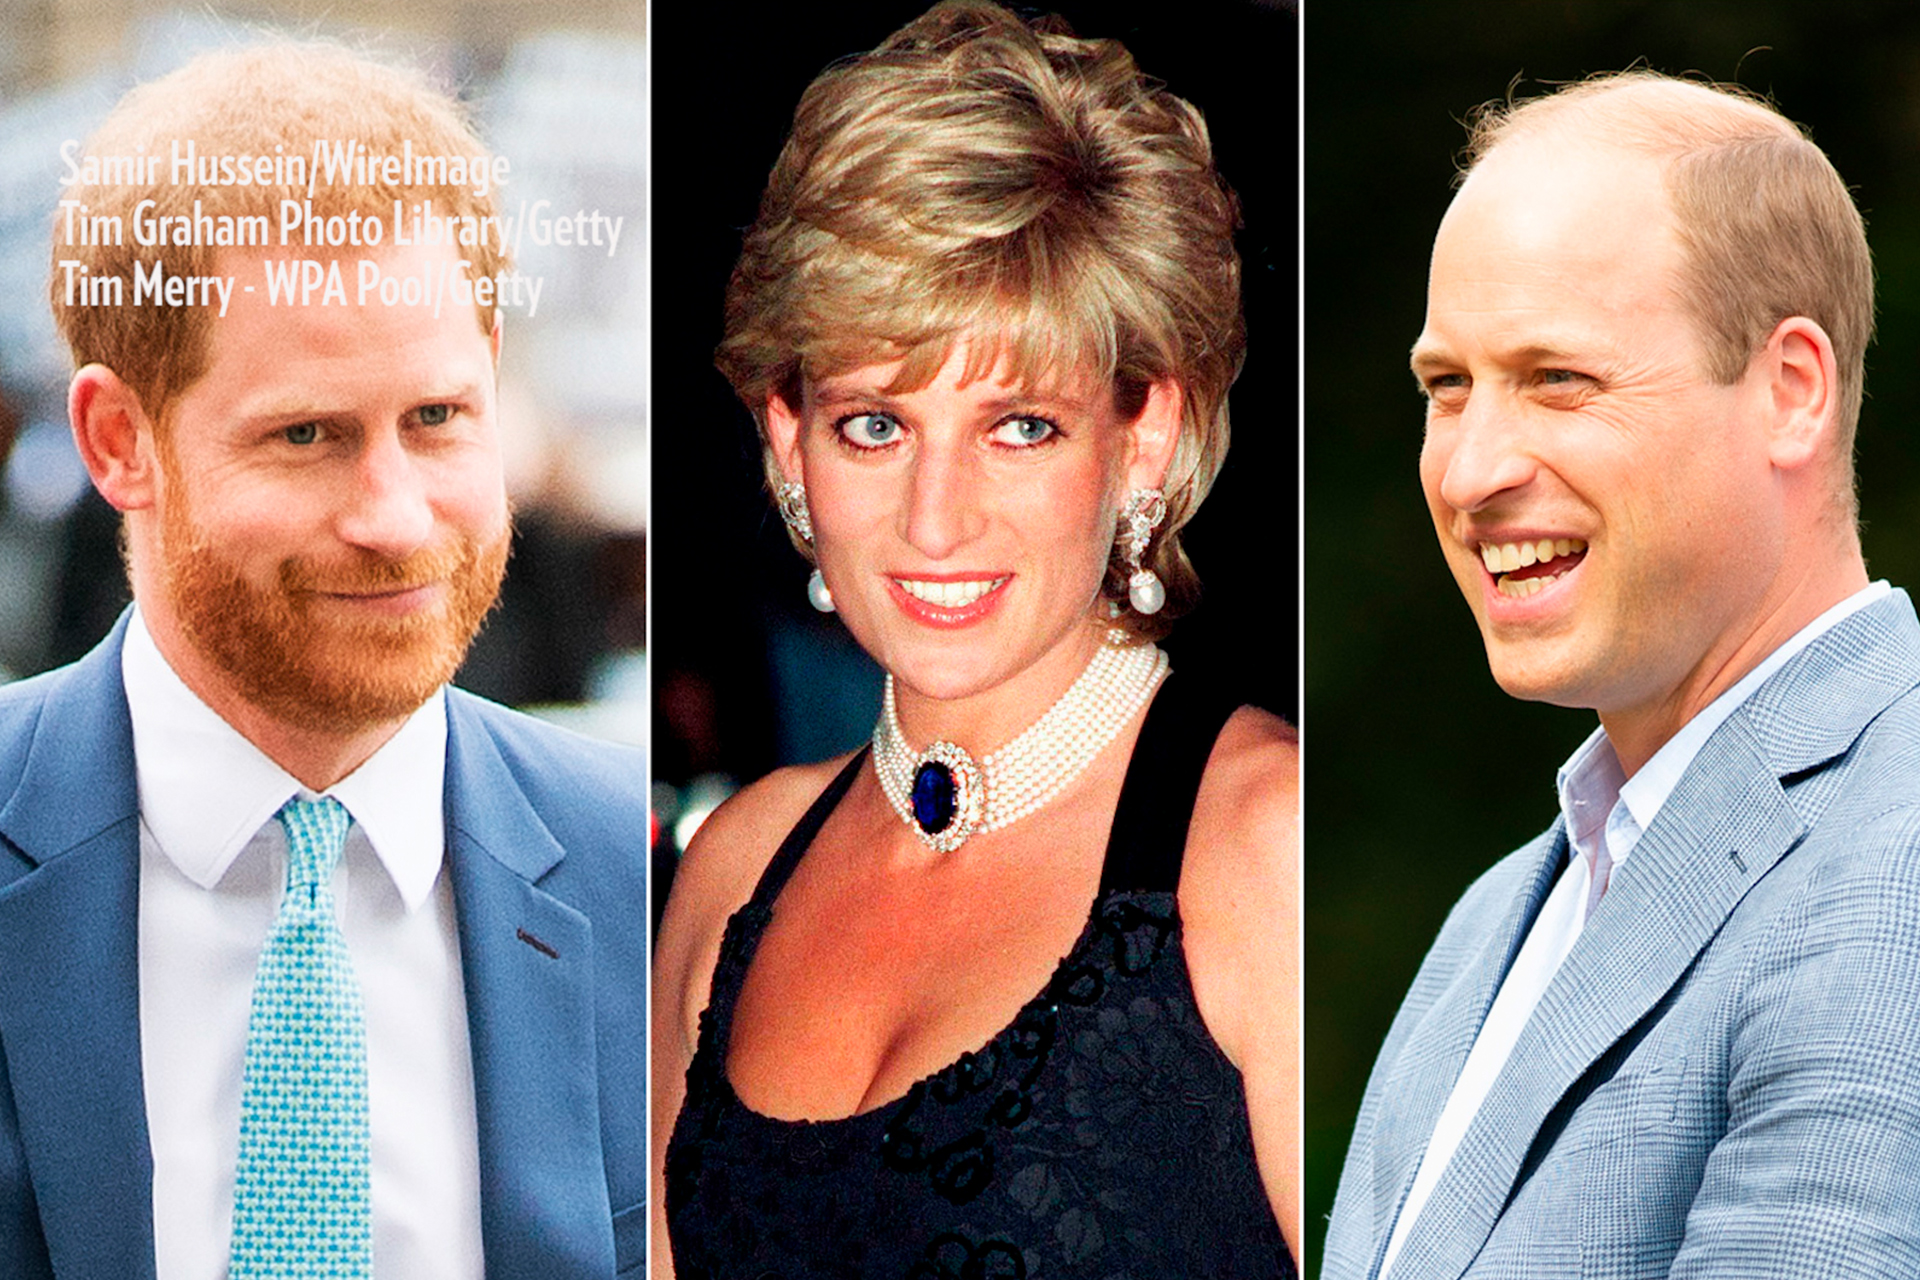 People Now: The New Way Princes William and Harry Are Honoring Mom Princess Diana's 'Life and Legacy' - Watch the Full Episode